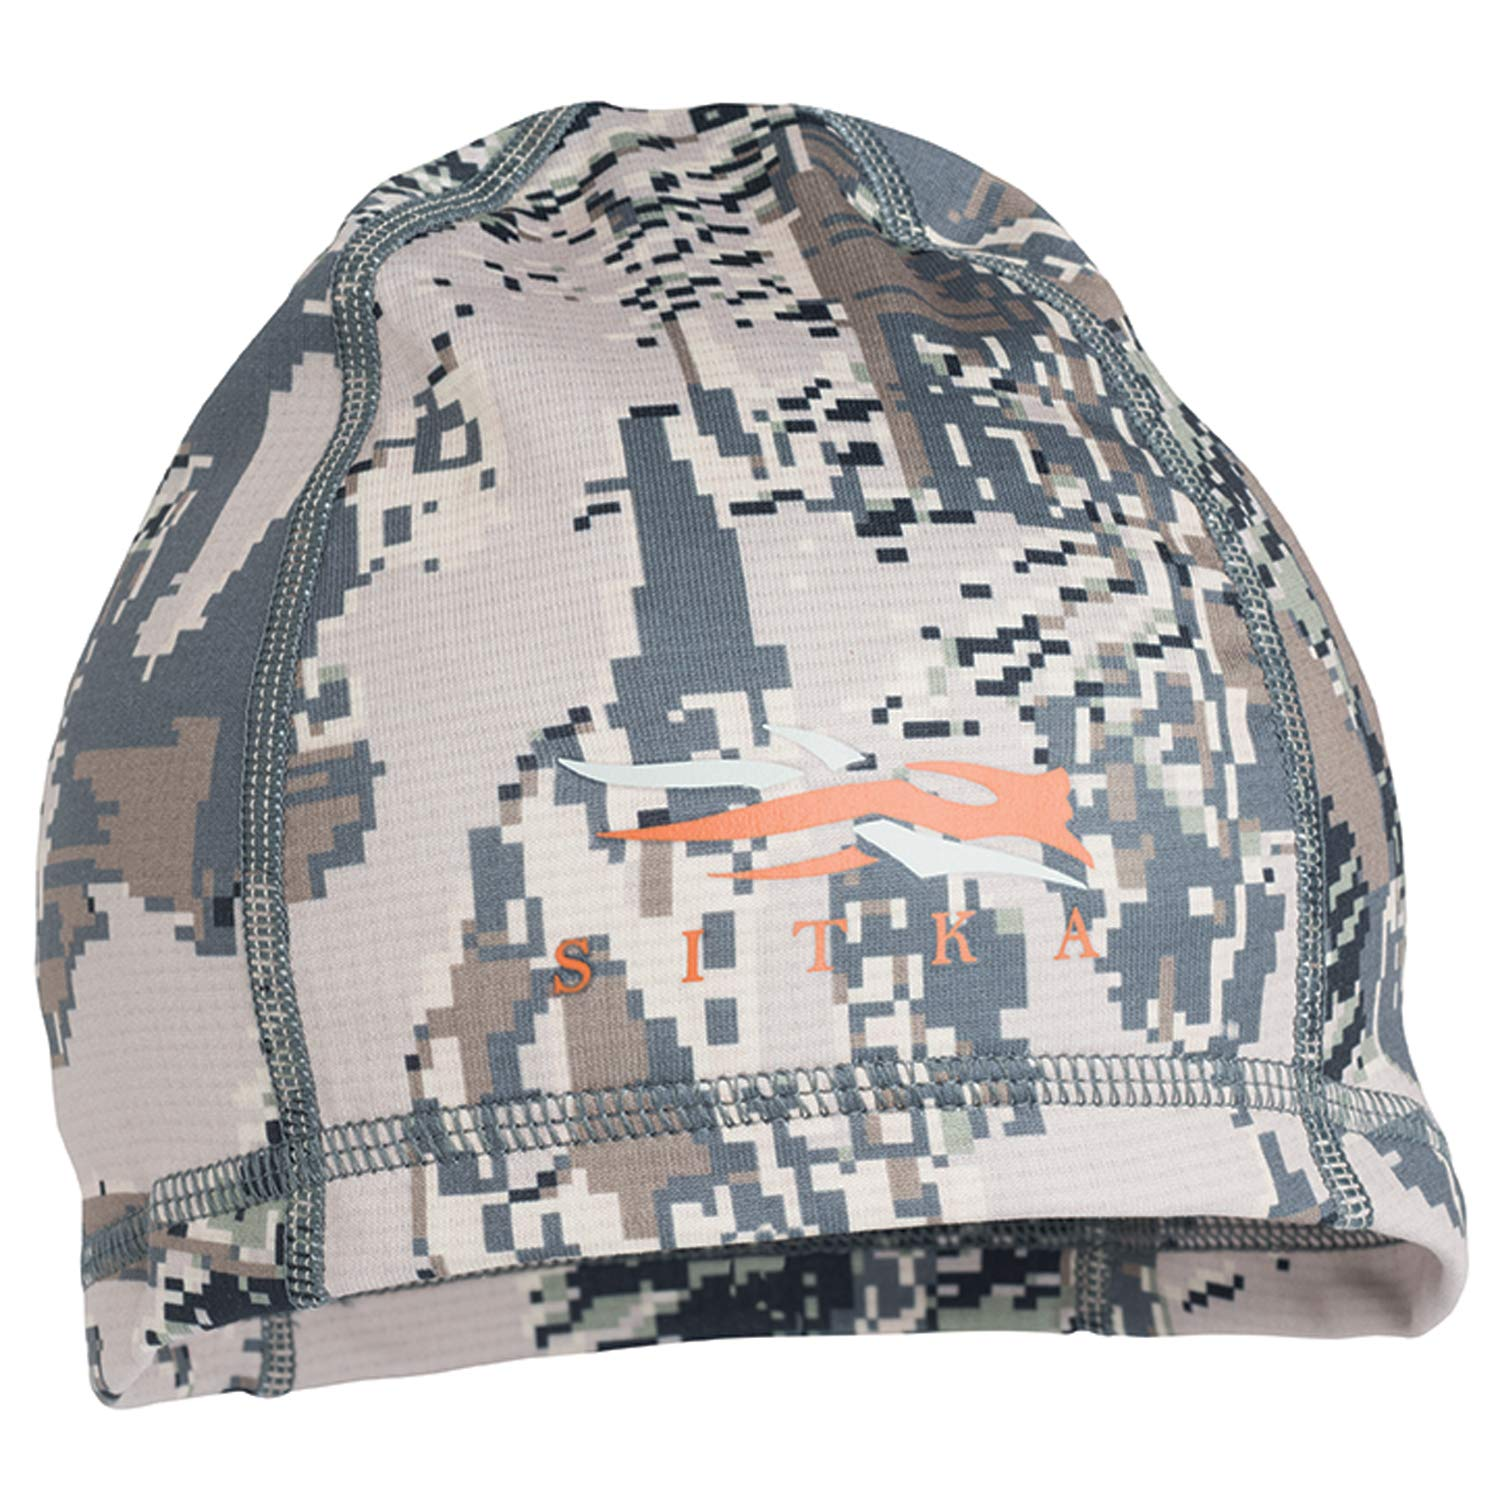 SITKA New for 2019 Beanie Optifade Open Country One Size Fits All by SITKA